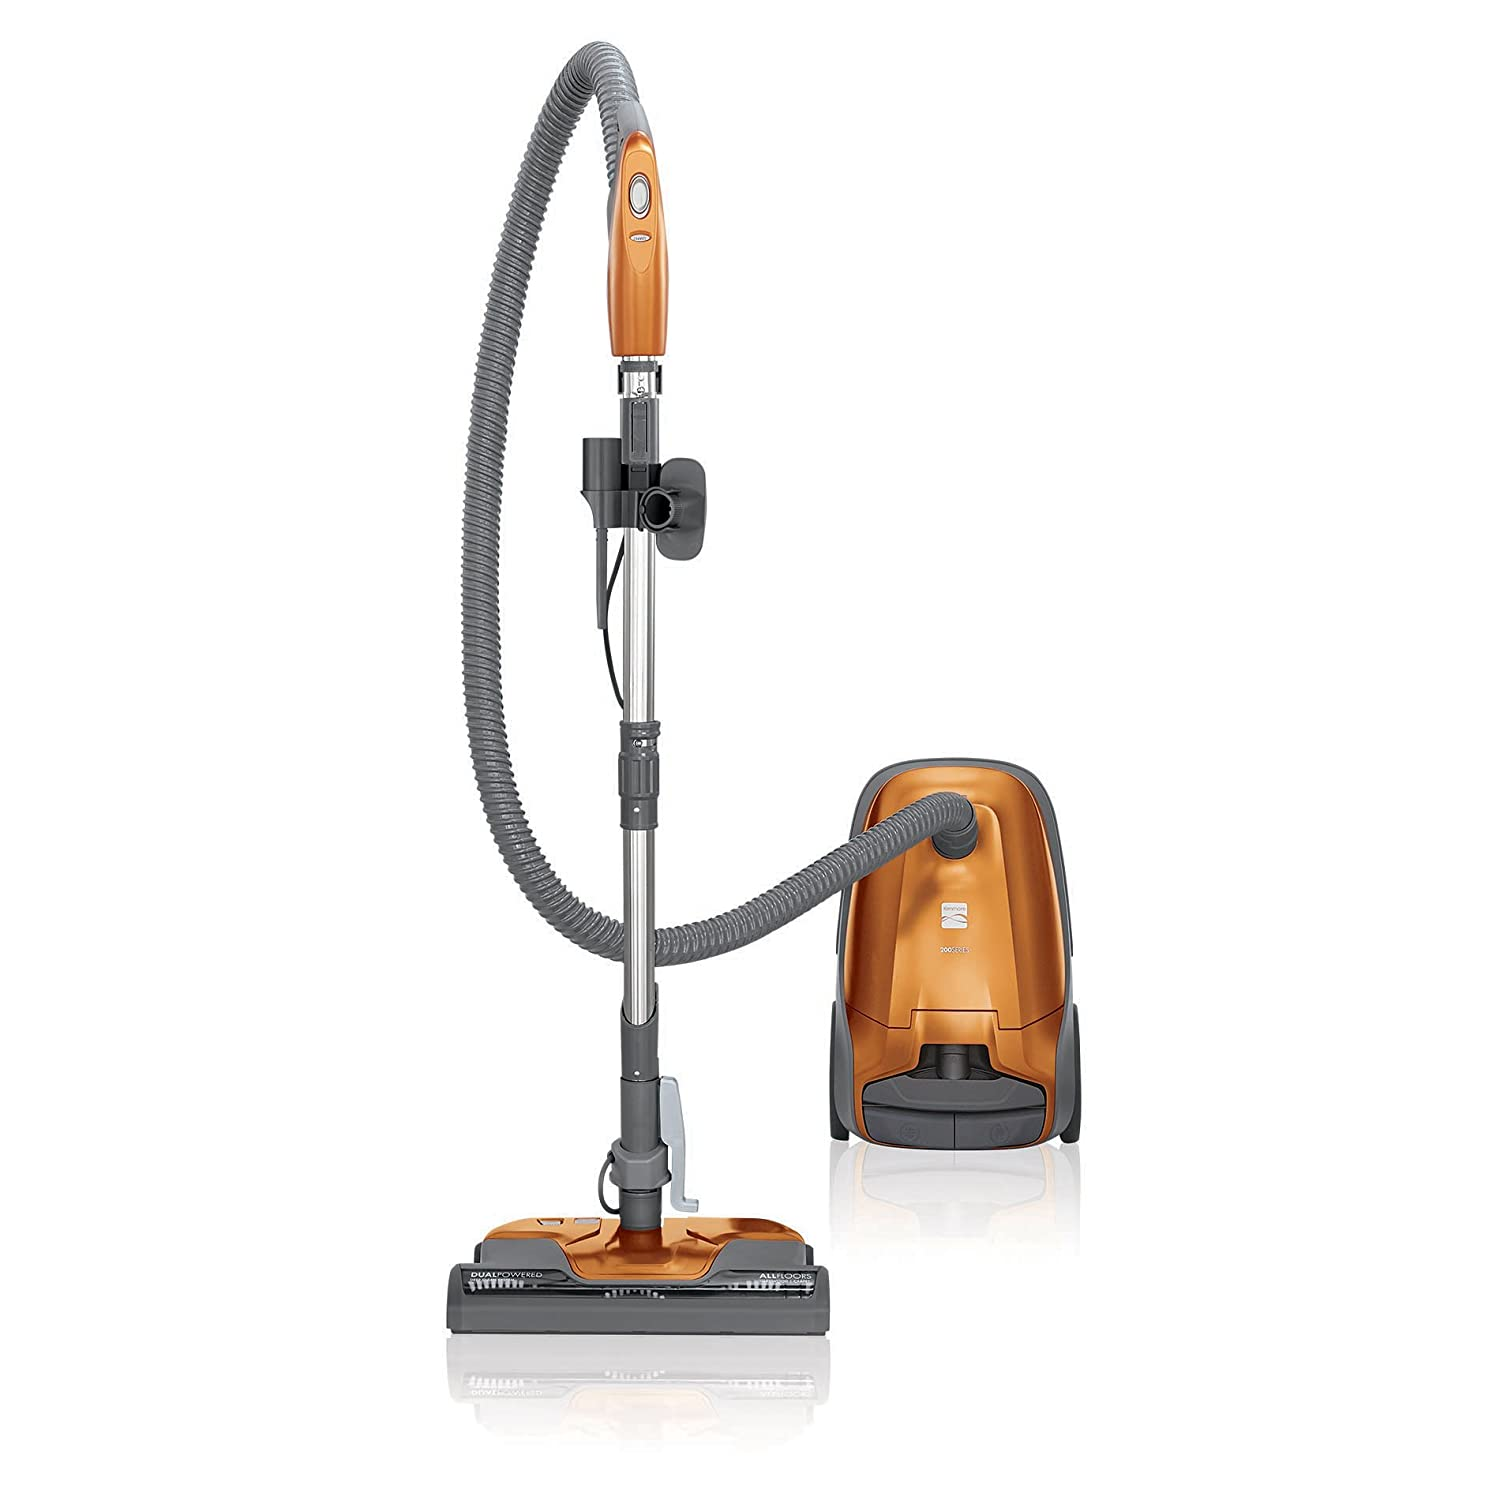 Kenmore 81214 Multi-Surface Bagged Canister Vacuum Cleaner with Cord Rewind, Orange